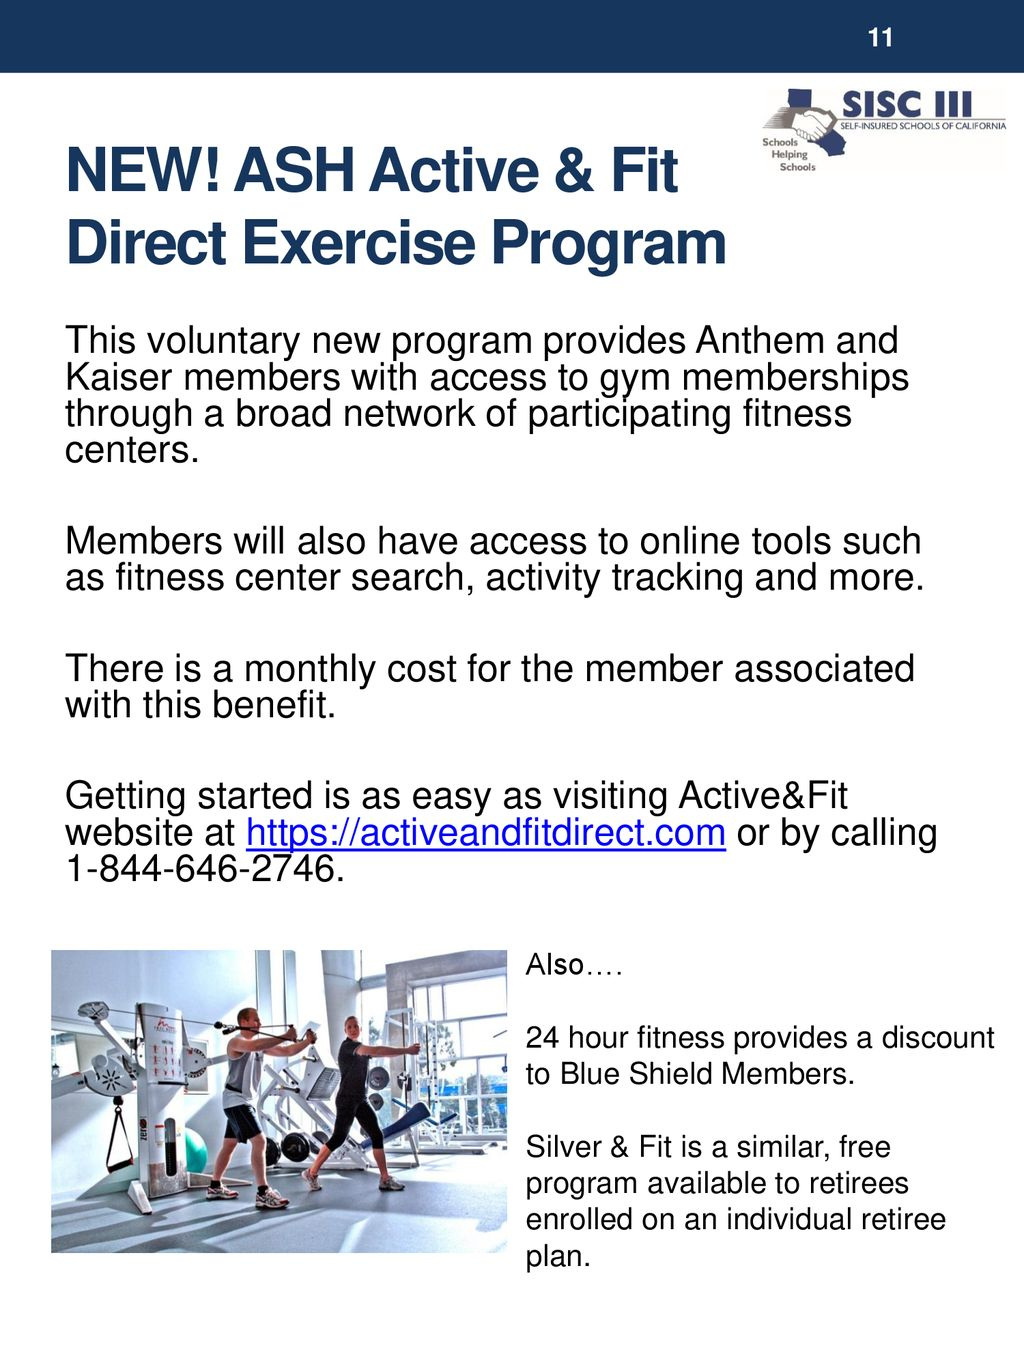 SISC Wellness PROGRAMS AND RESOURCES